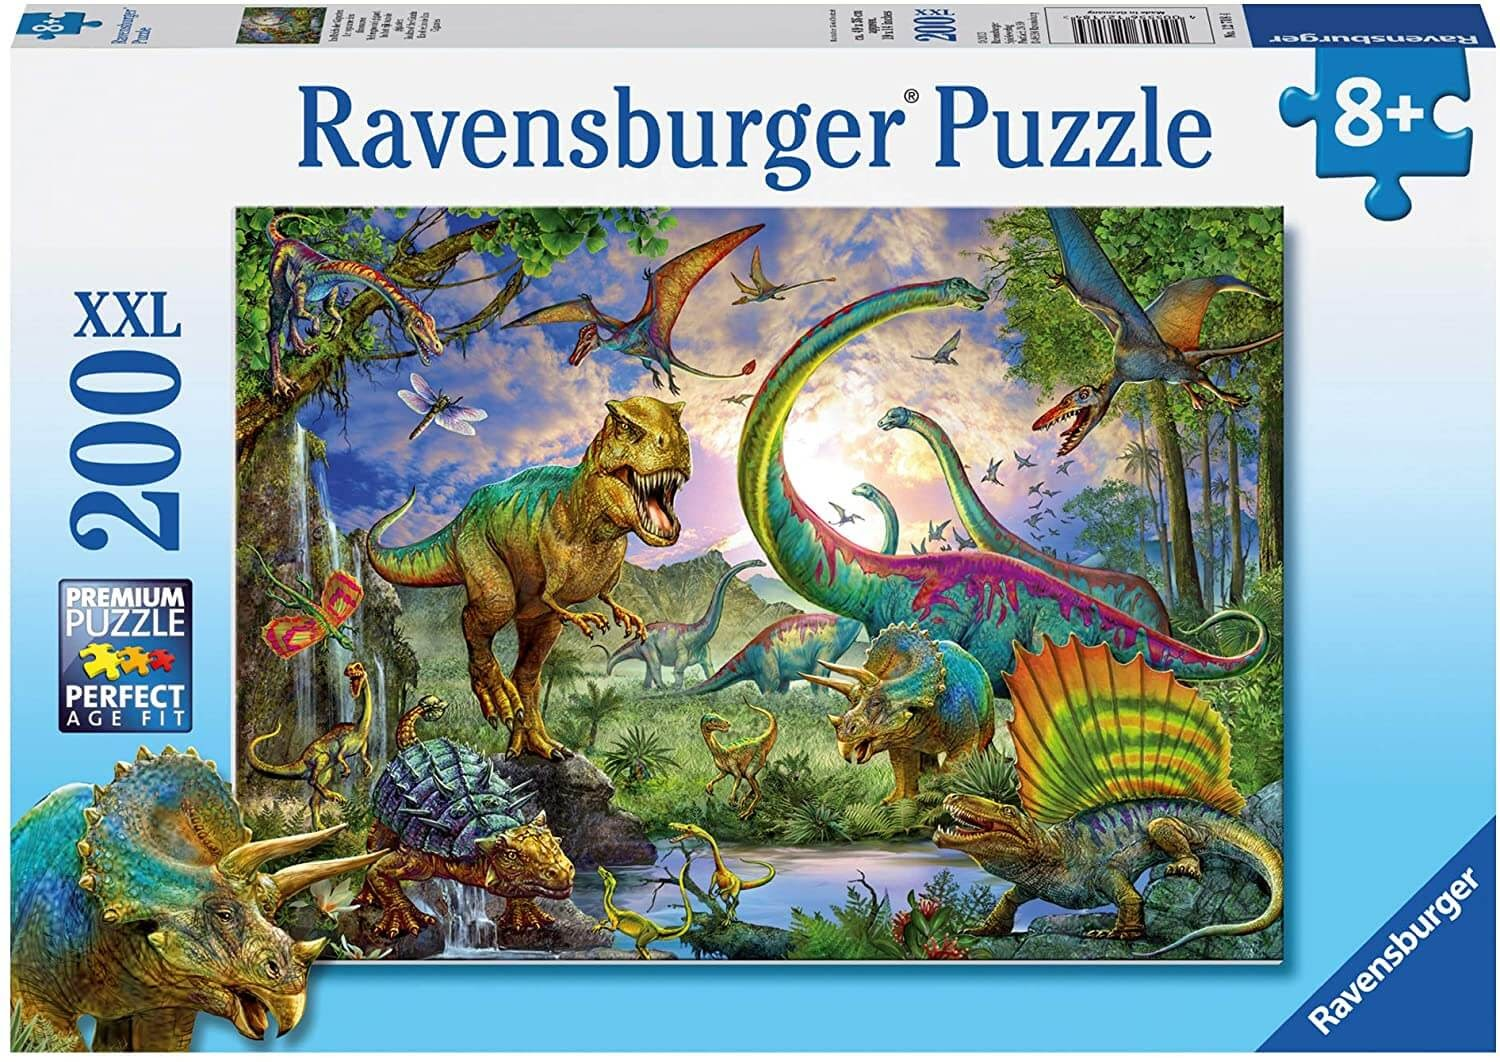 Realm of the Giants dinosaur puzzle